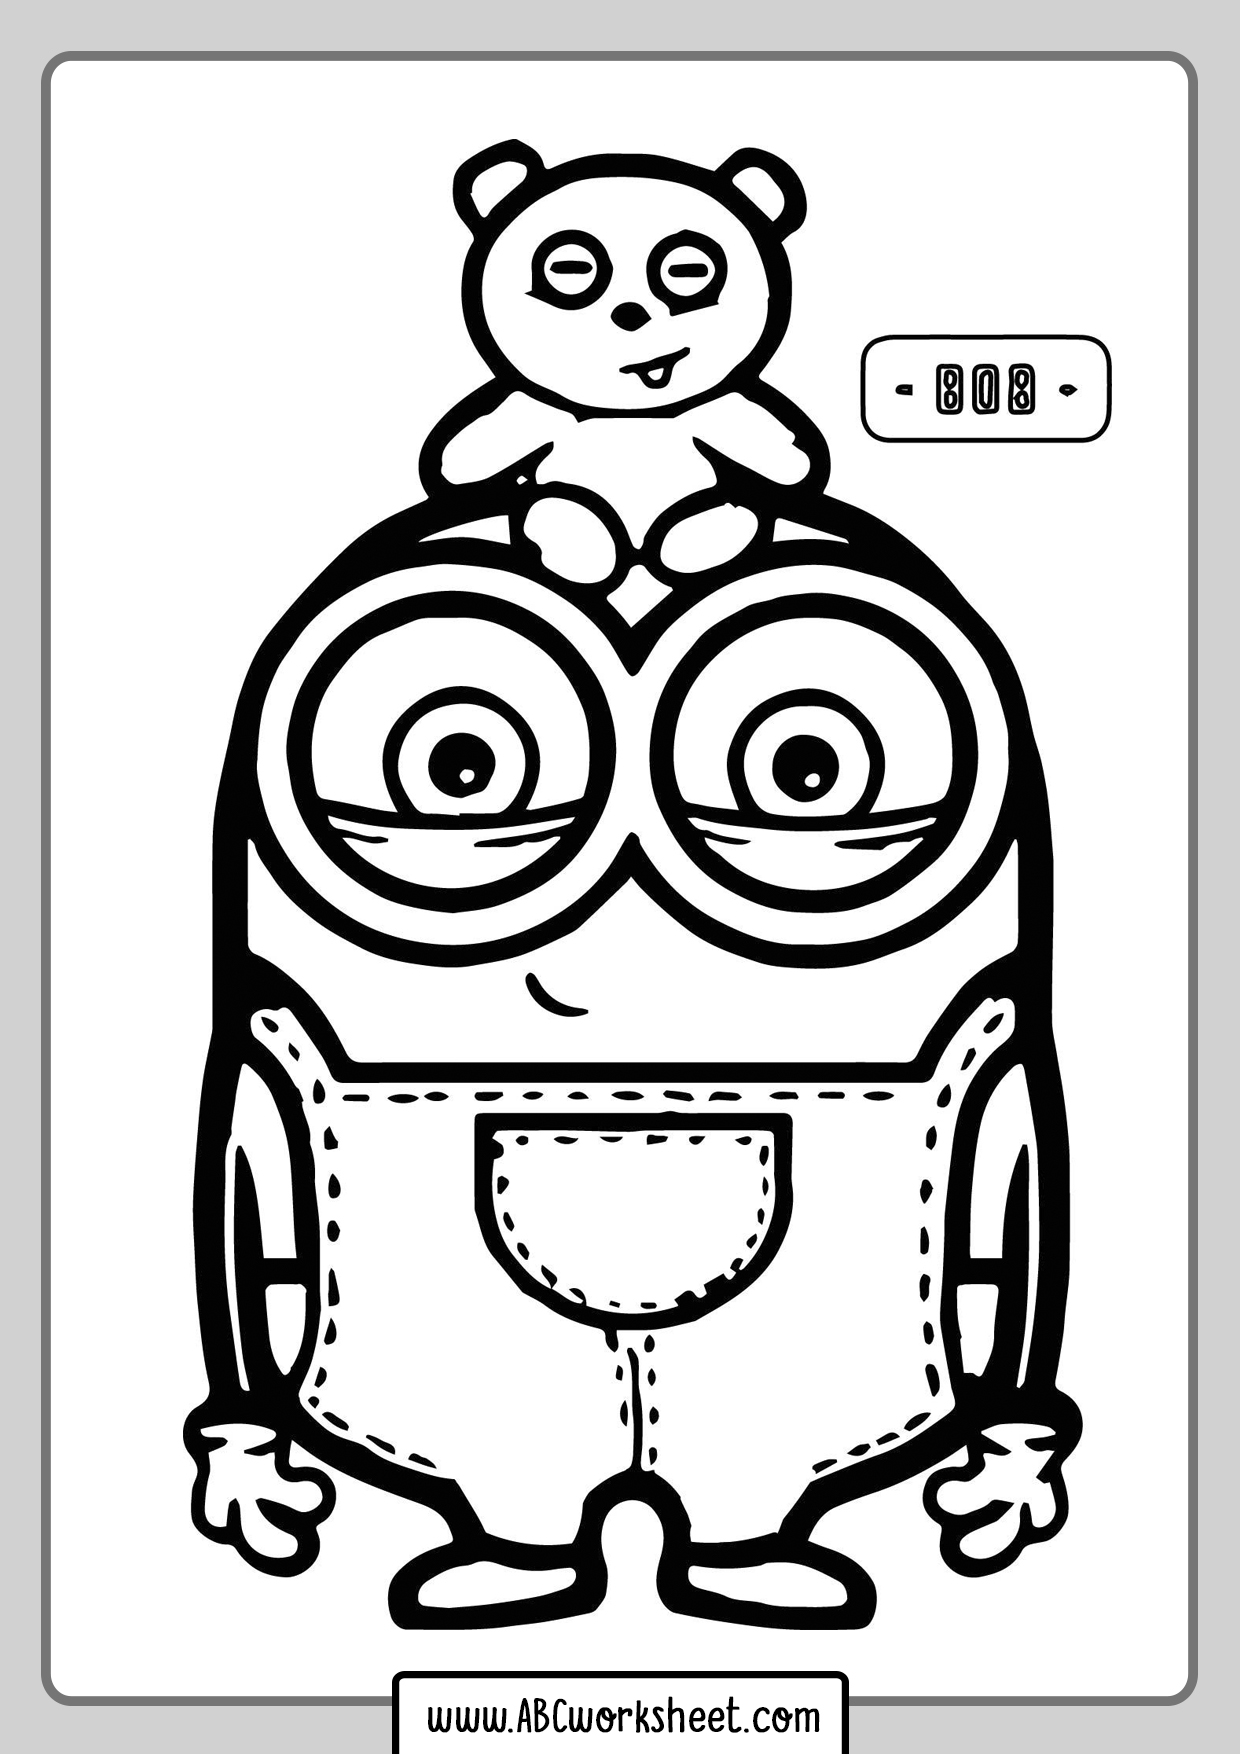 Minions Coloring Book For Kids